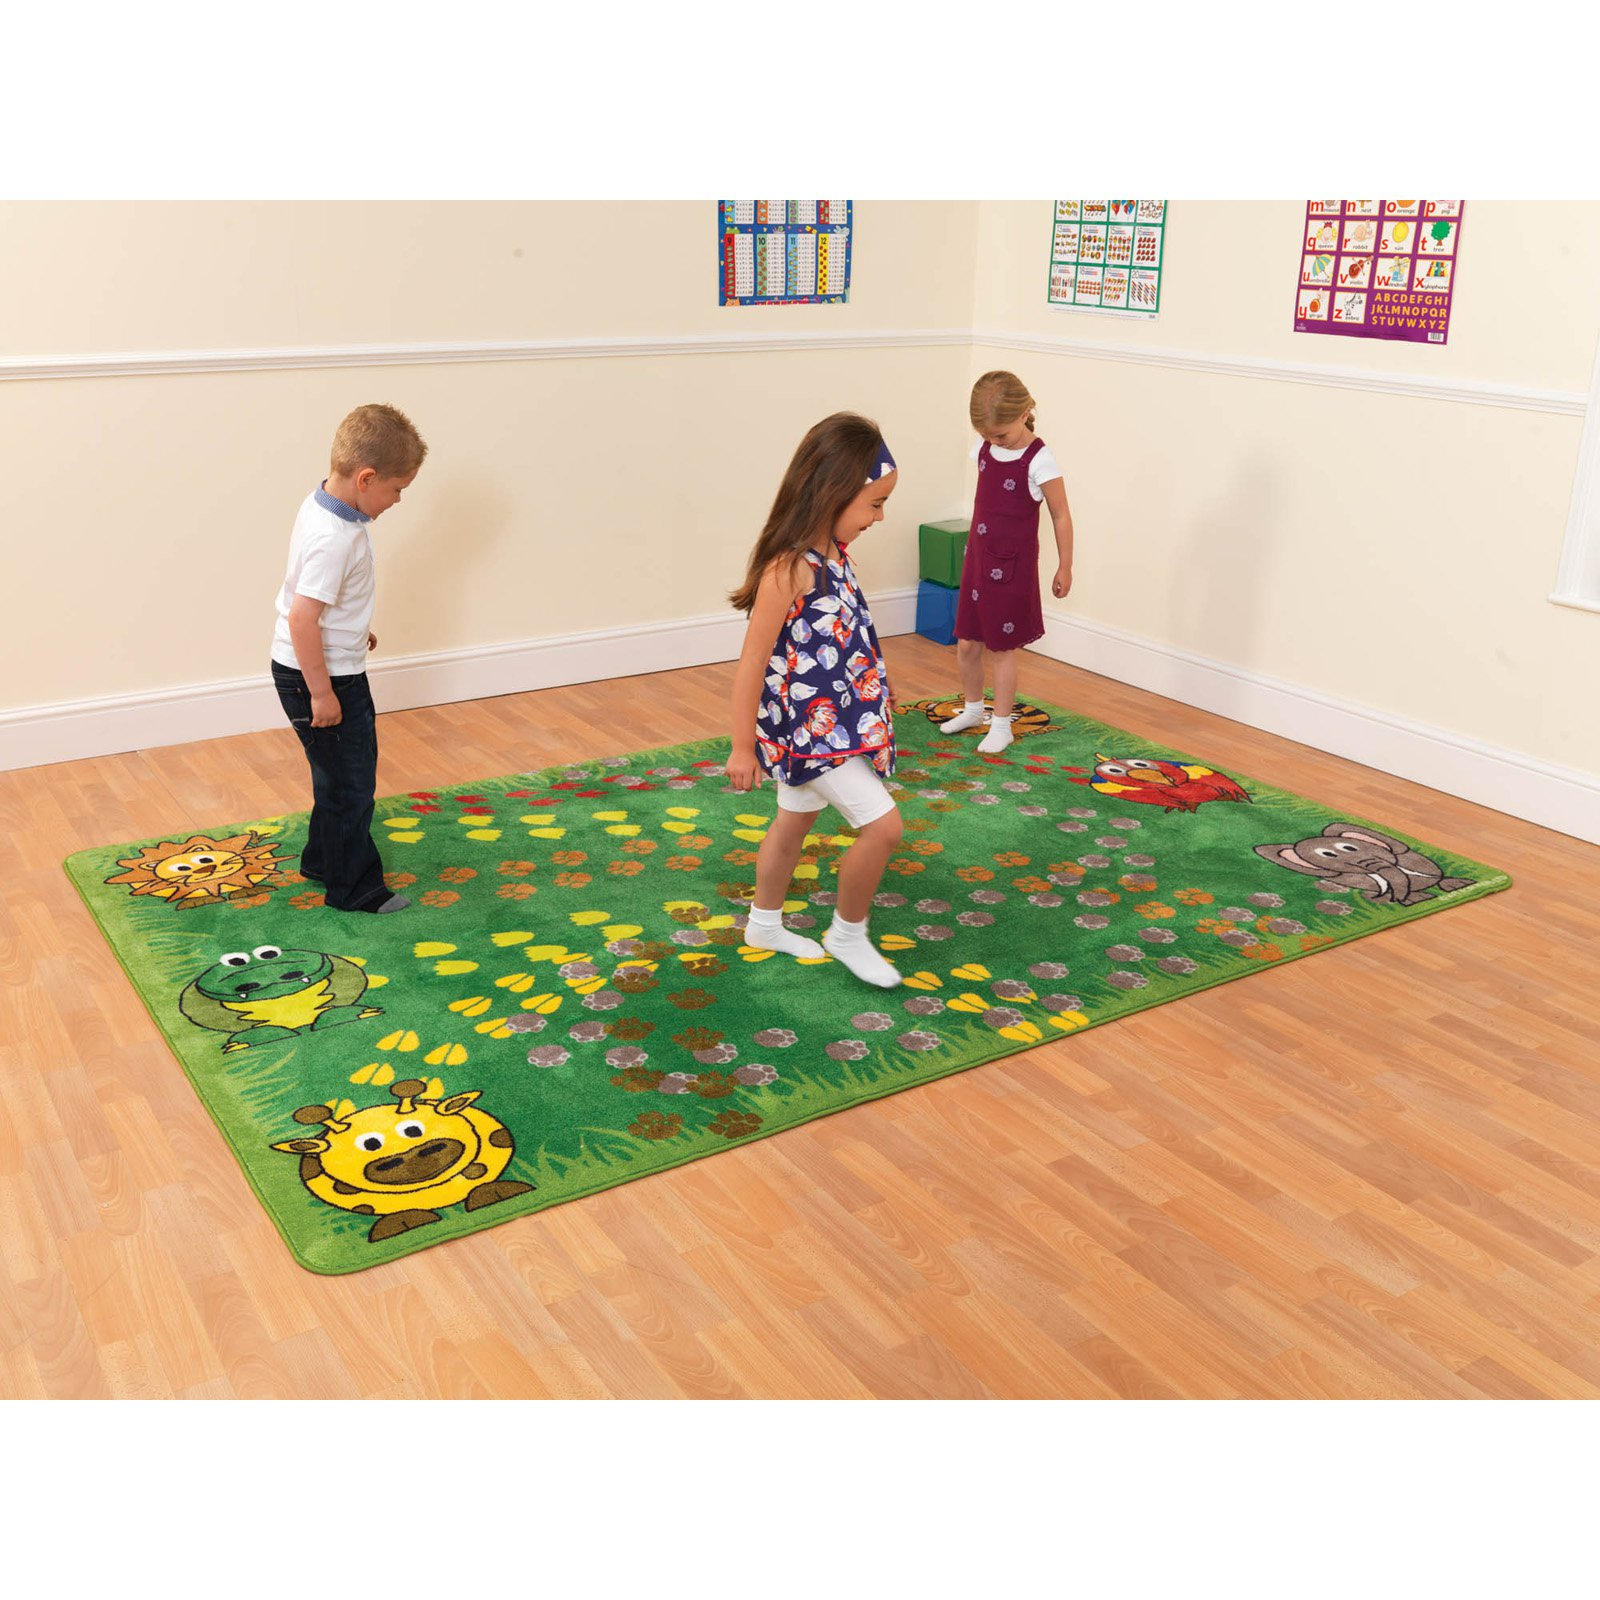 Kalokids Town & Country Follow that Zoo Animal Motricity Carpet